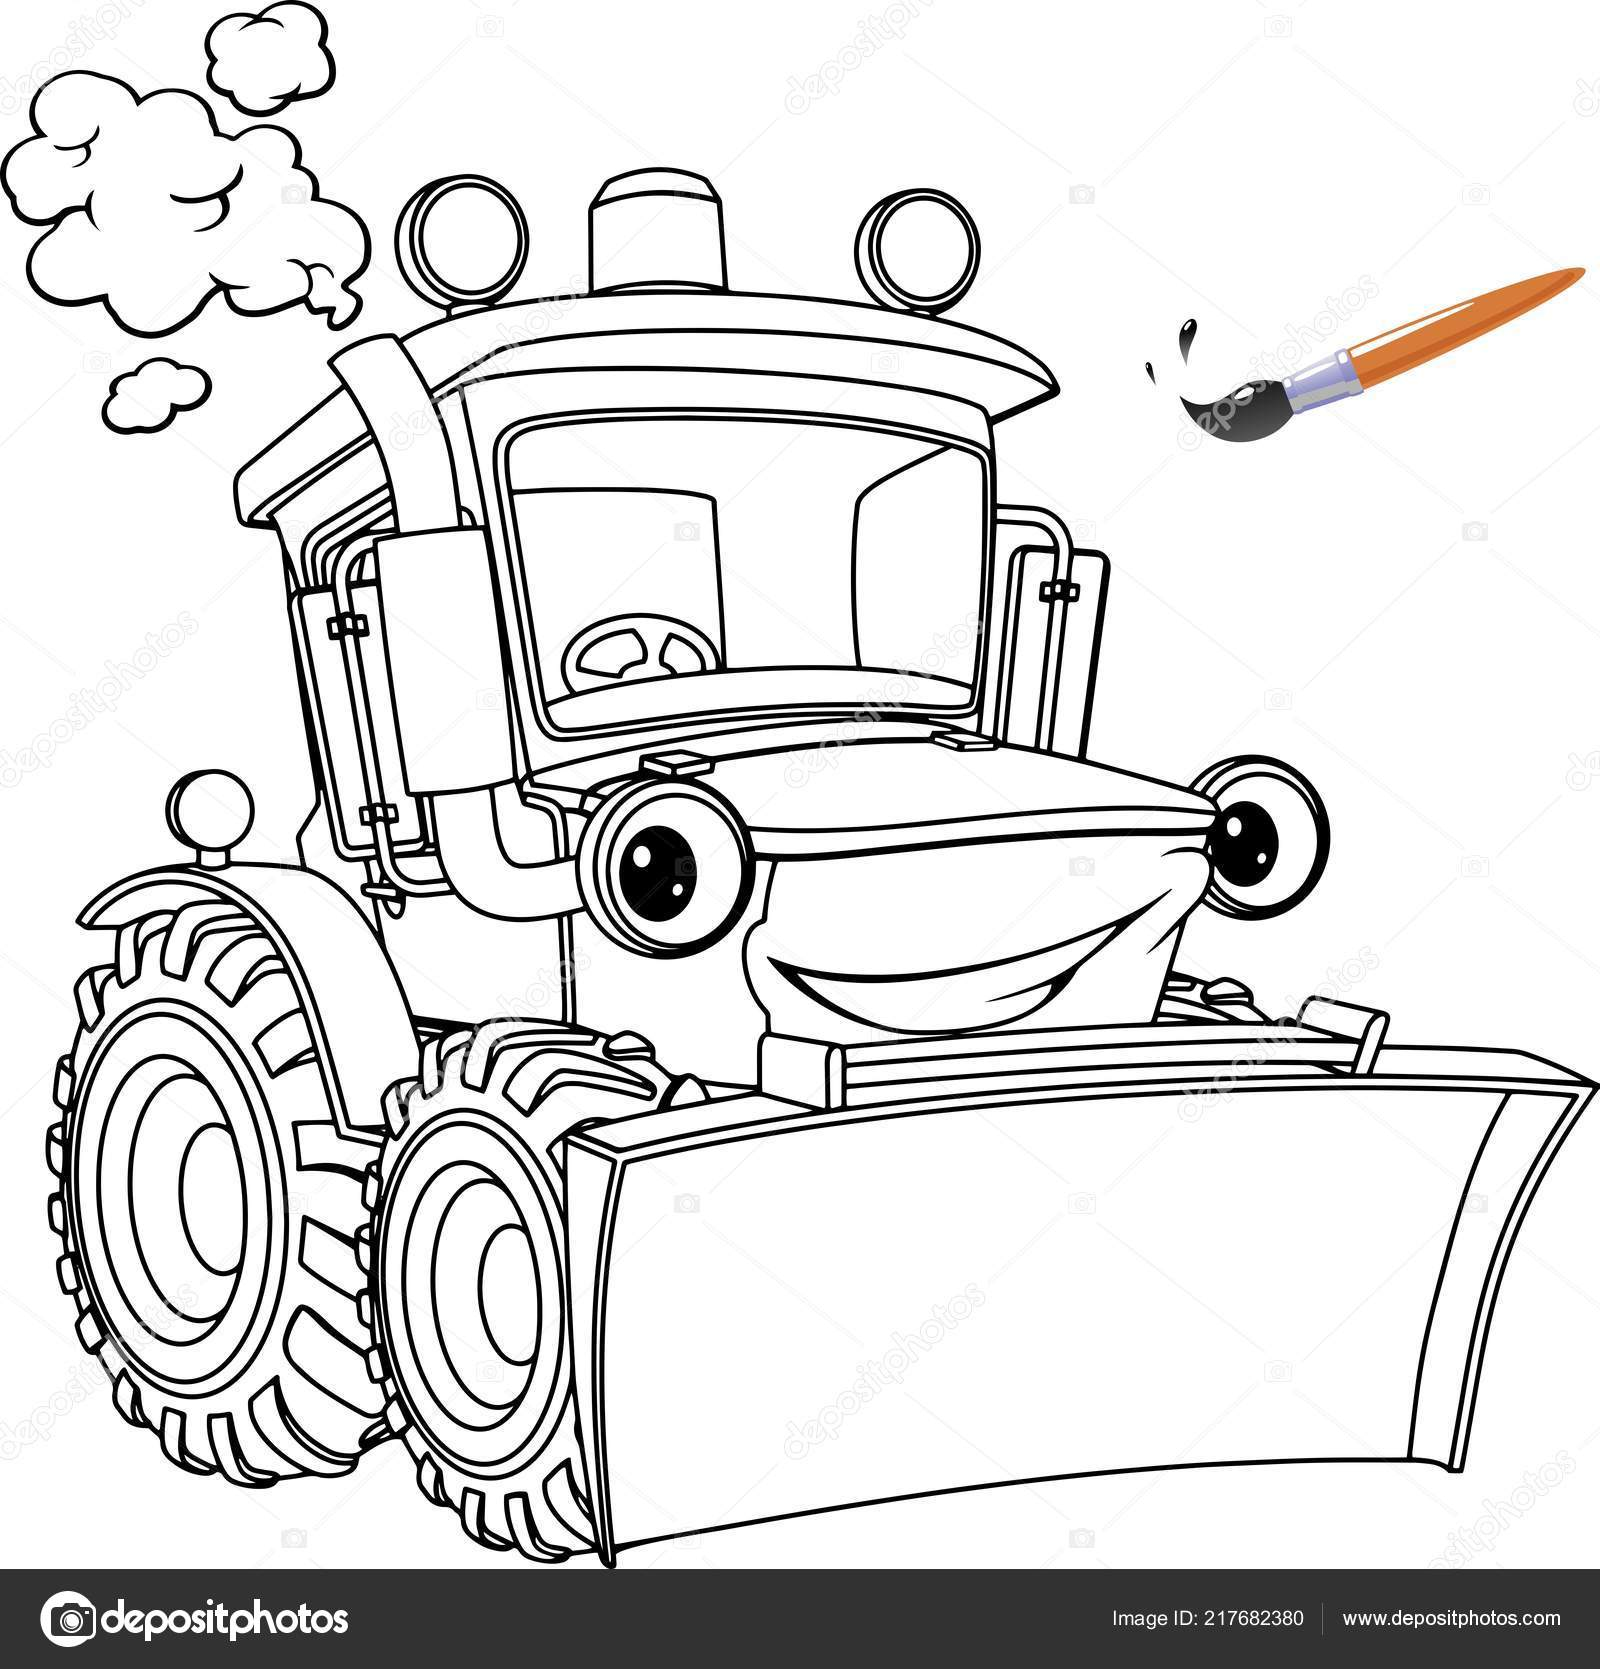 funny tractor bulldozer coloring book design kids children stock vector image by vitd coloring pages Bull Dozer Coloring Page